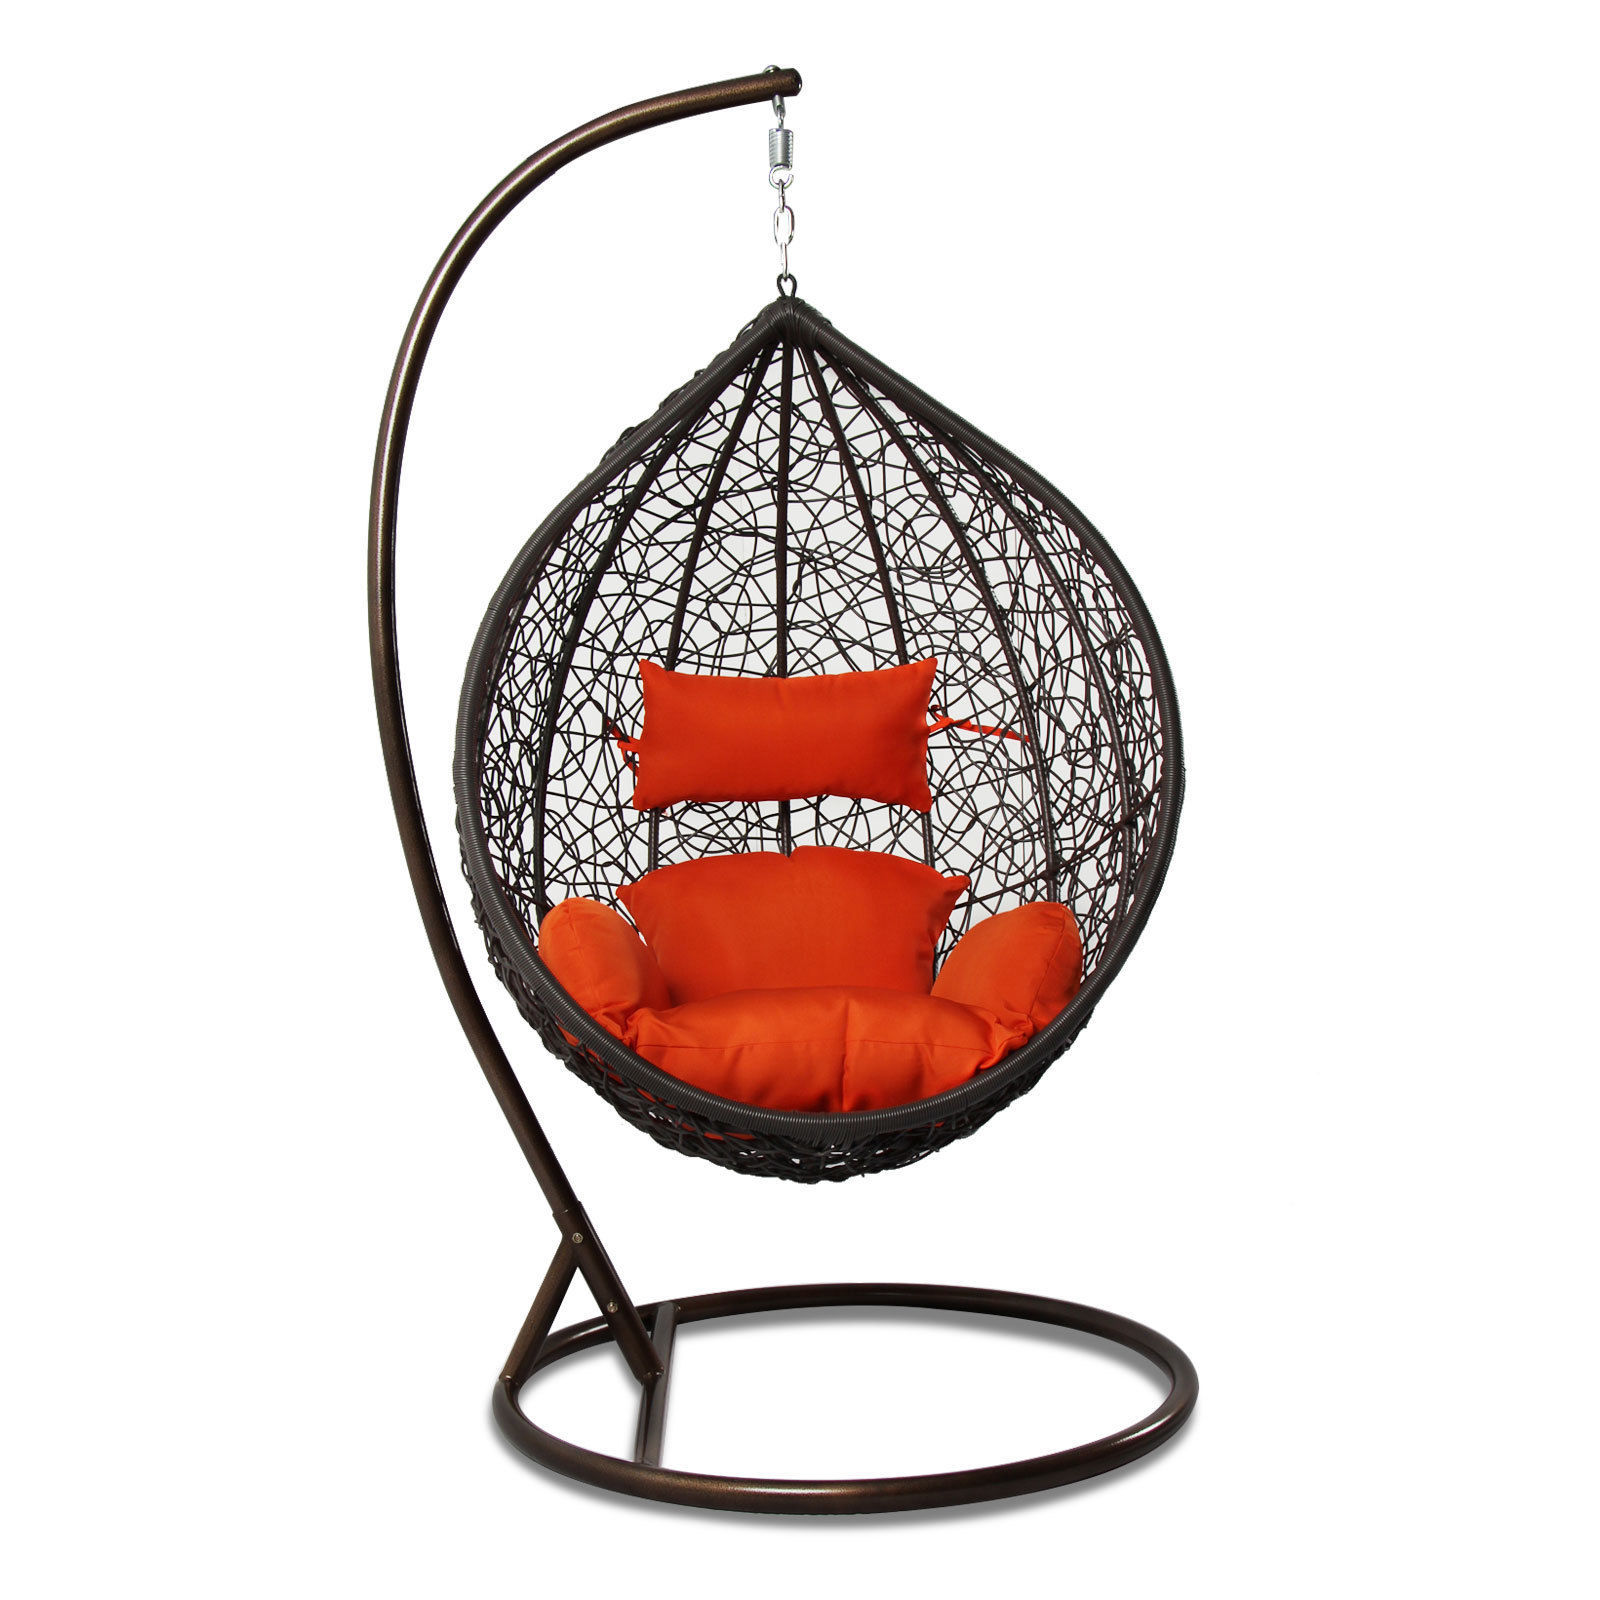 Outdoor Wicker Hanging Egg Chair Rattan Outdoor Wicker Hanging Chair Egg Shape Stand Porch